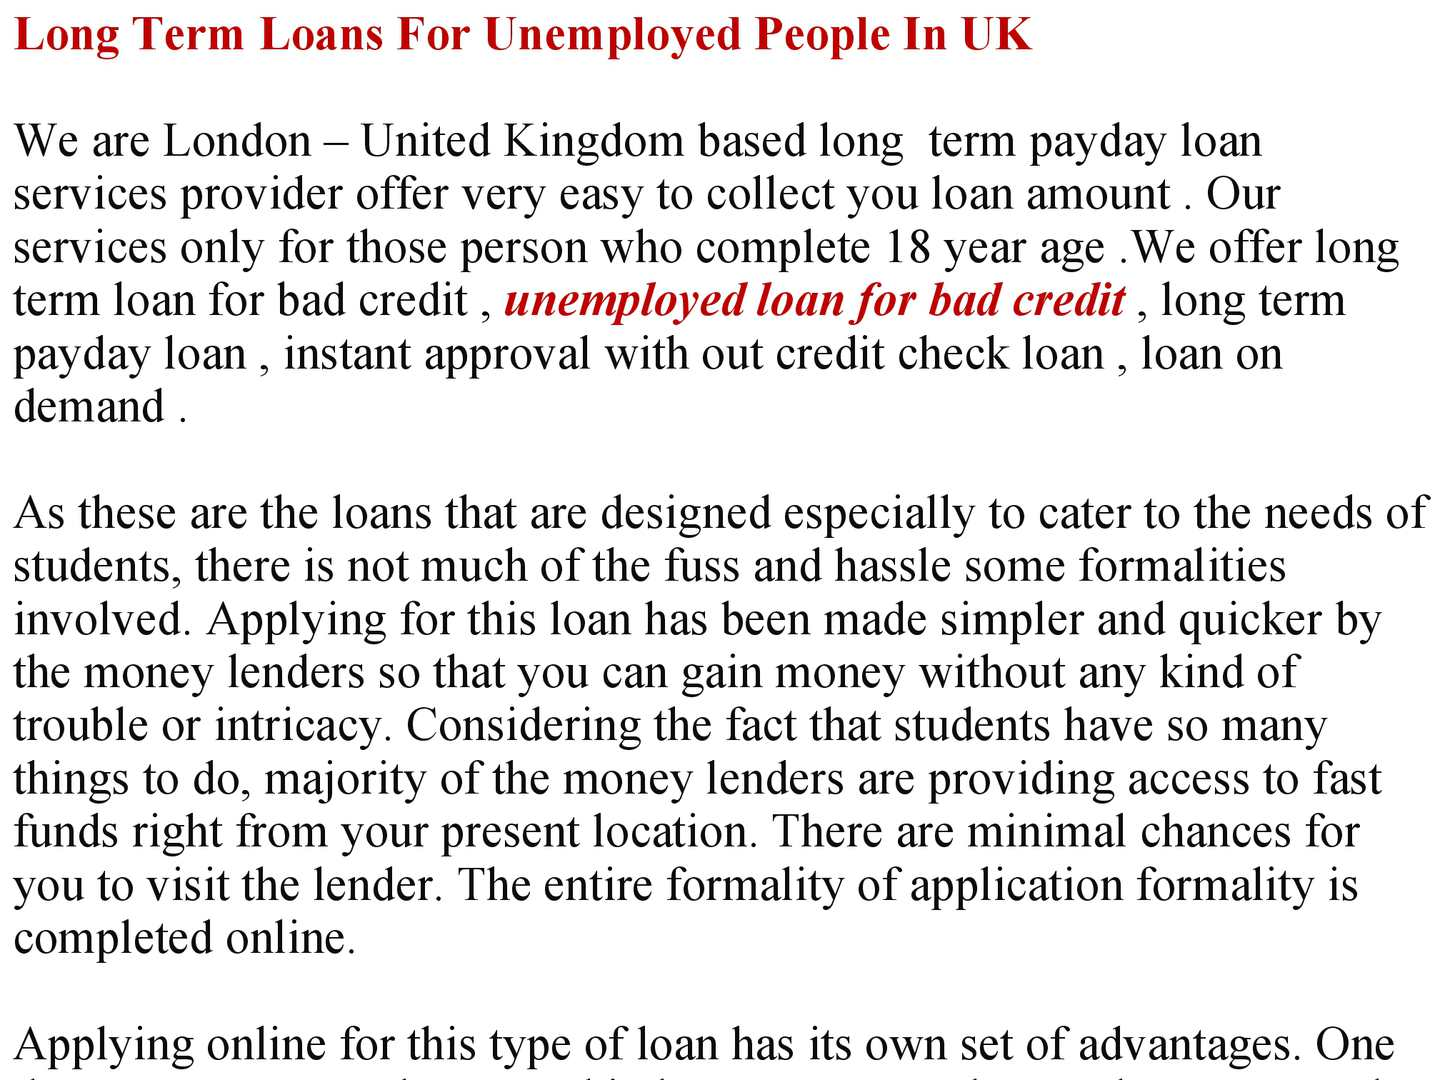 Long Term Loan >> Calameo Long Term Loans For Unemployed People In Uk